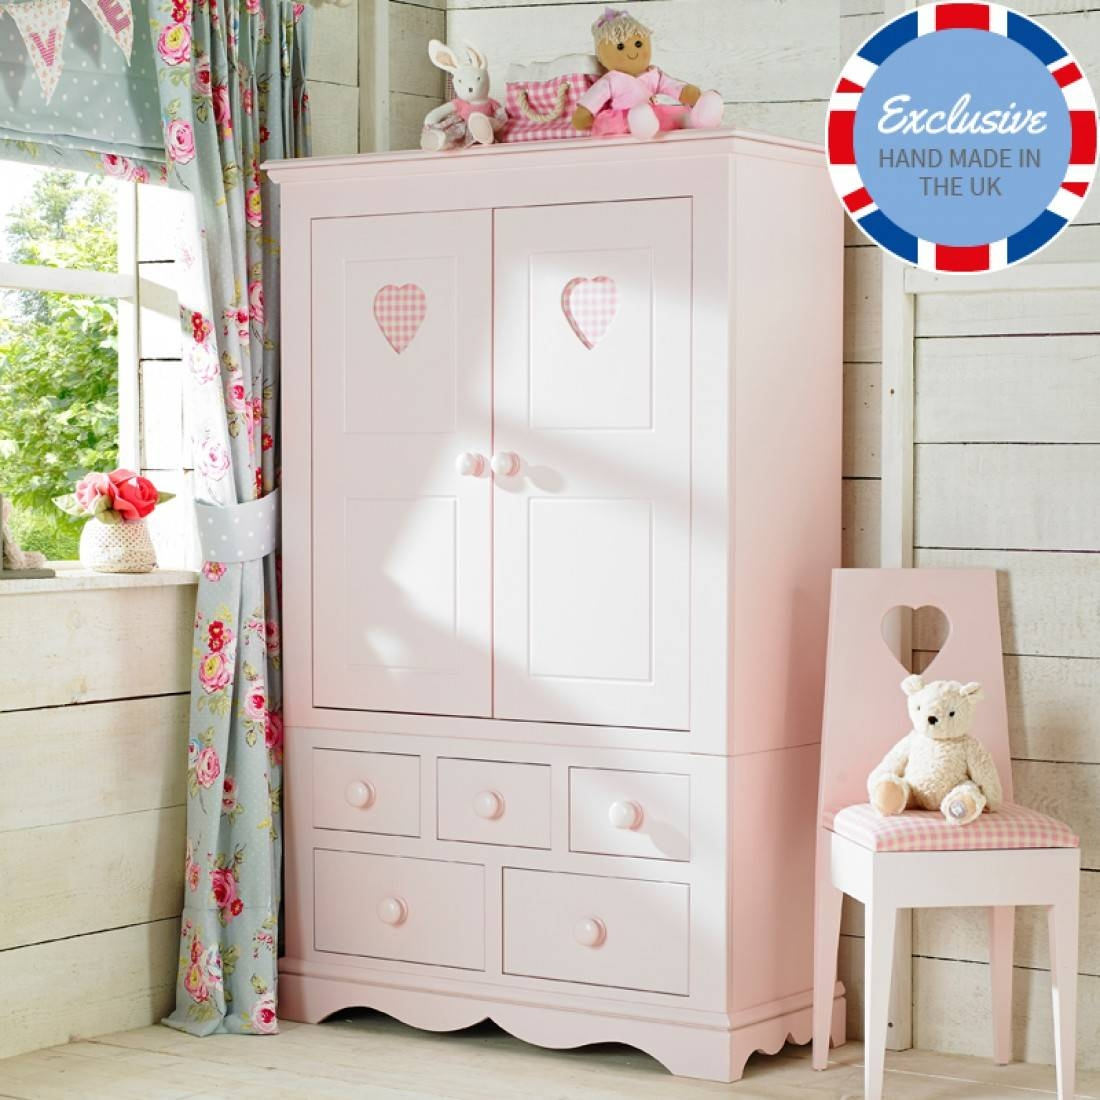 Childrens Wardrobes | Childrens Furniture – Little Lucy Willow Uk Throughout Childrens Double Rail Wardrobes (View 19 of 30)